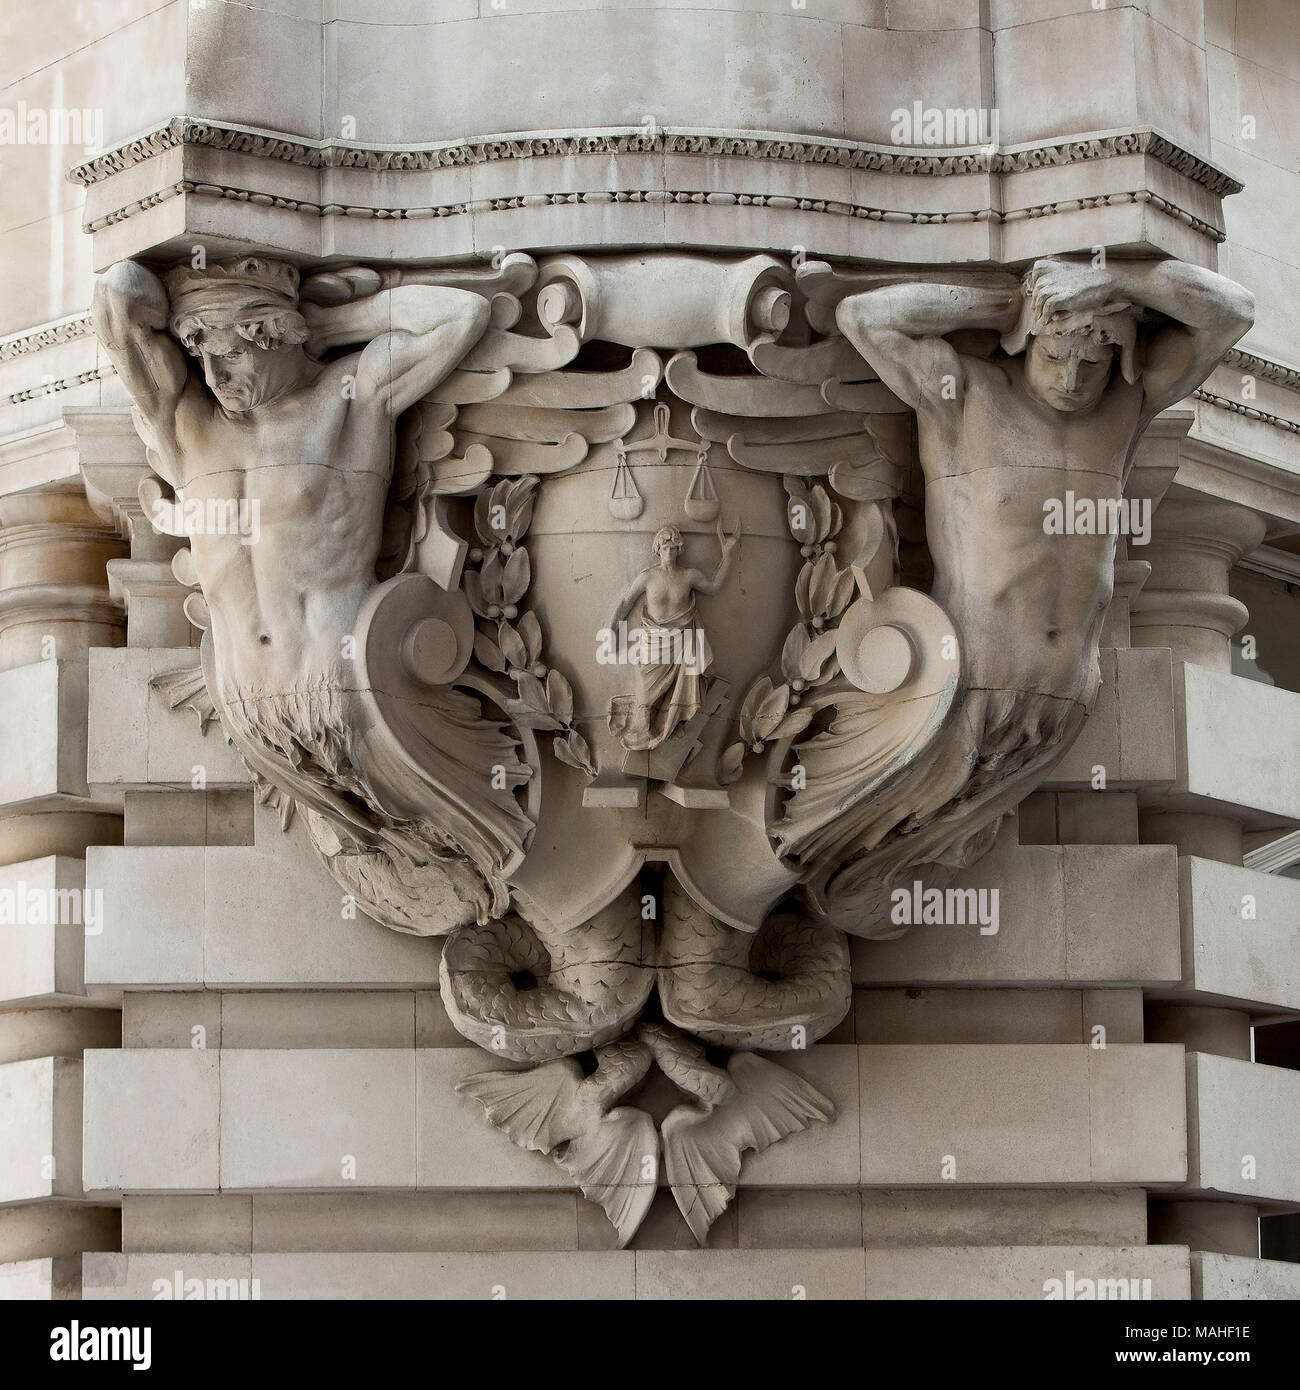 Institute of Chartered Accountants: Corbel by Harry Bates  (1850 - 1899)  Several sculptors worked on the wall reliefs of this fine building tucked aw - Stock Image